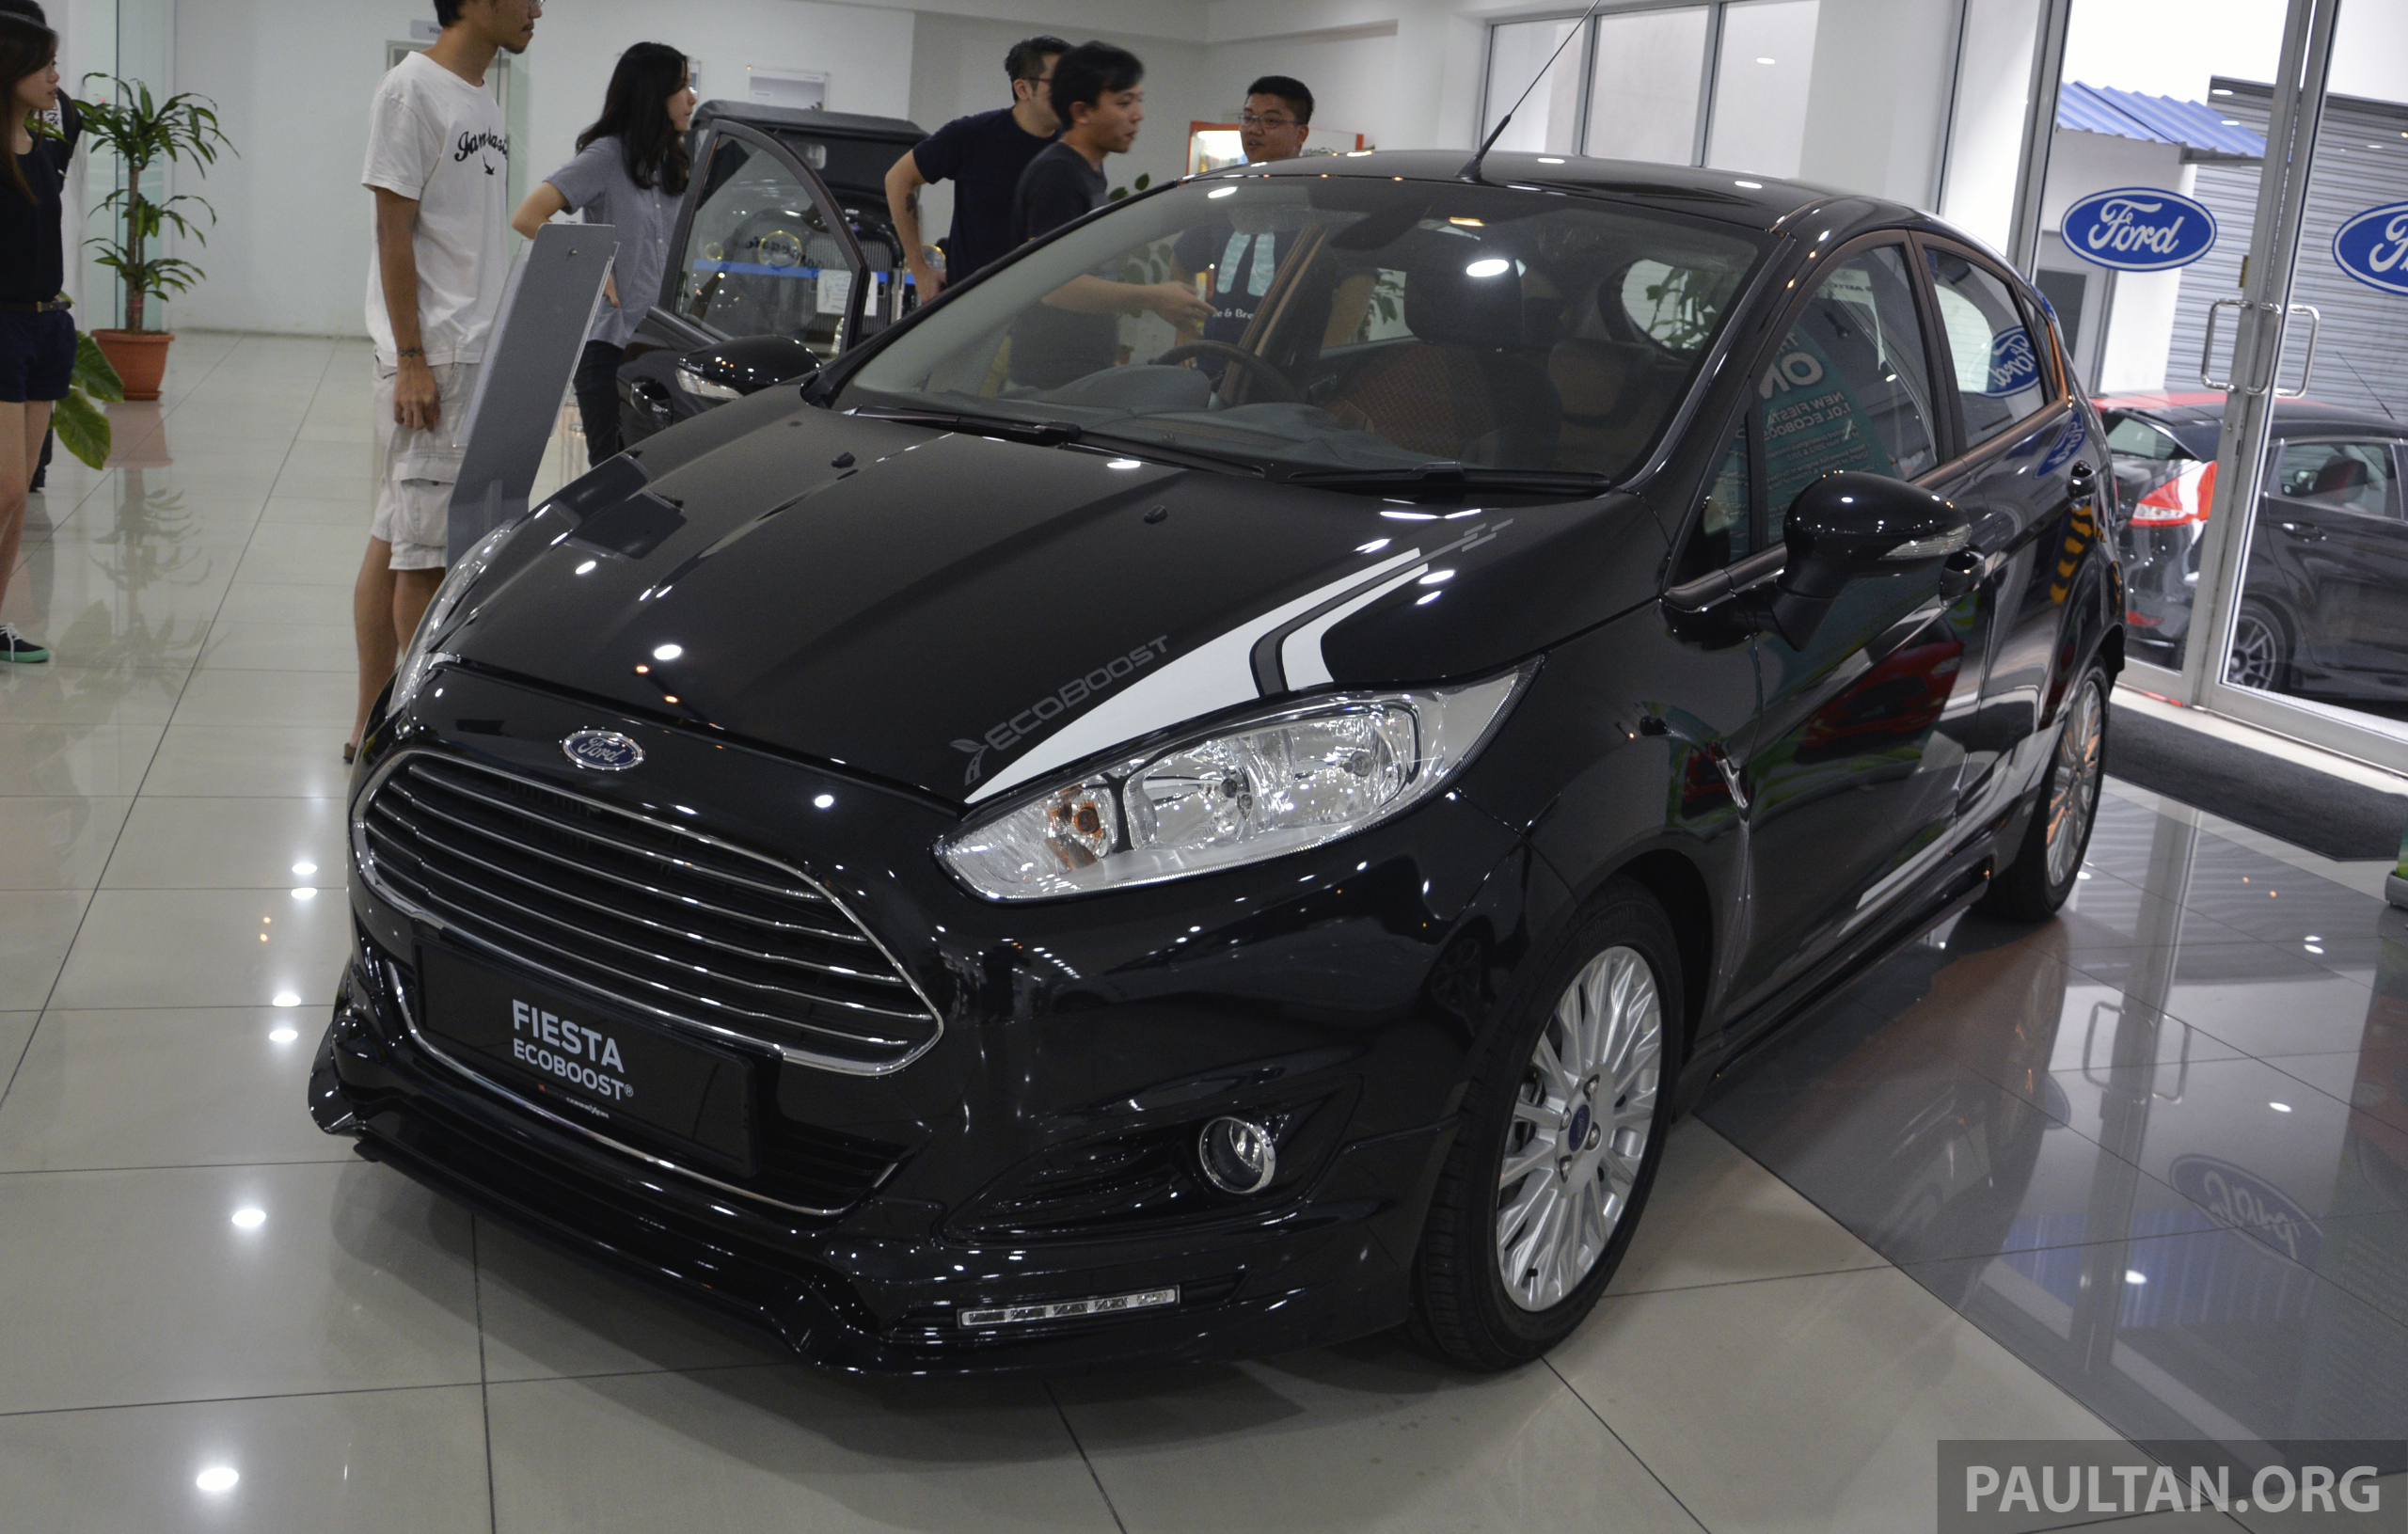 ford fiesta 1 0 ecoboost launched rm93 888 image 245525. Black Bedroom Furniture Sets. Home Design Ideas